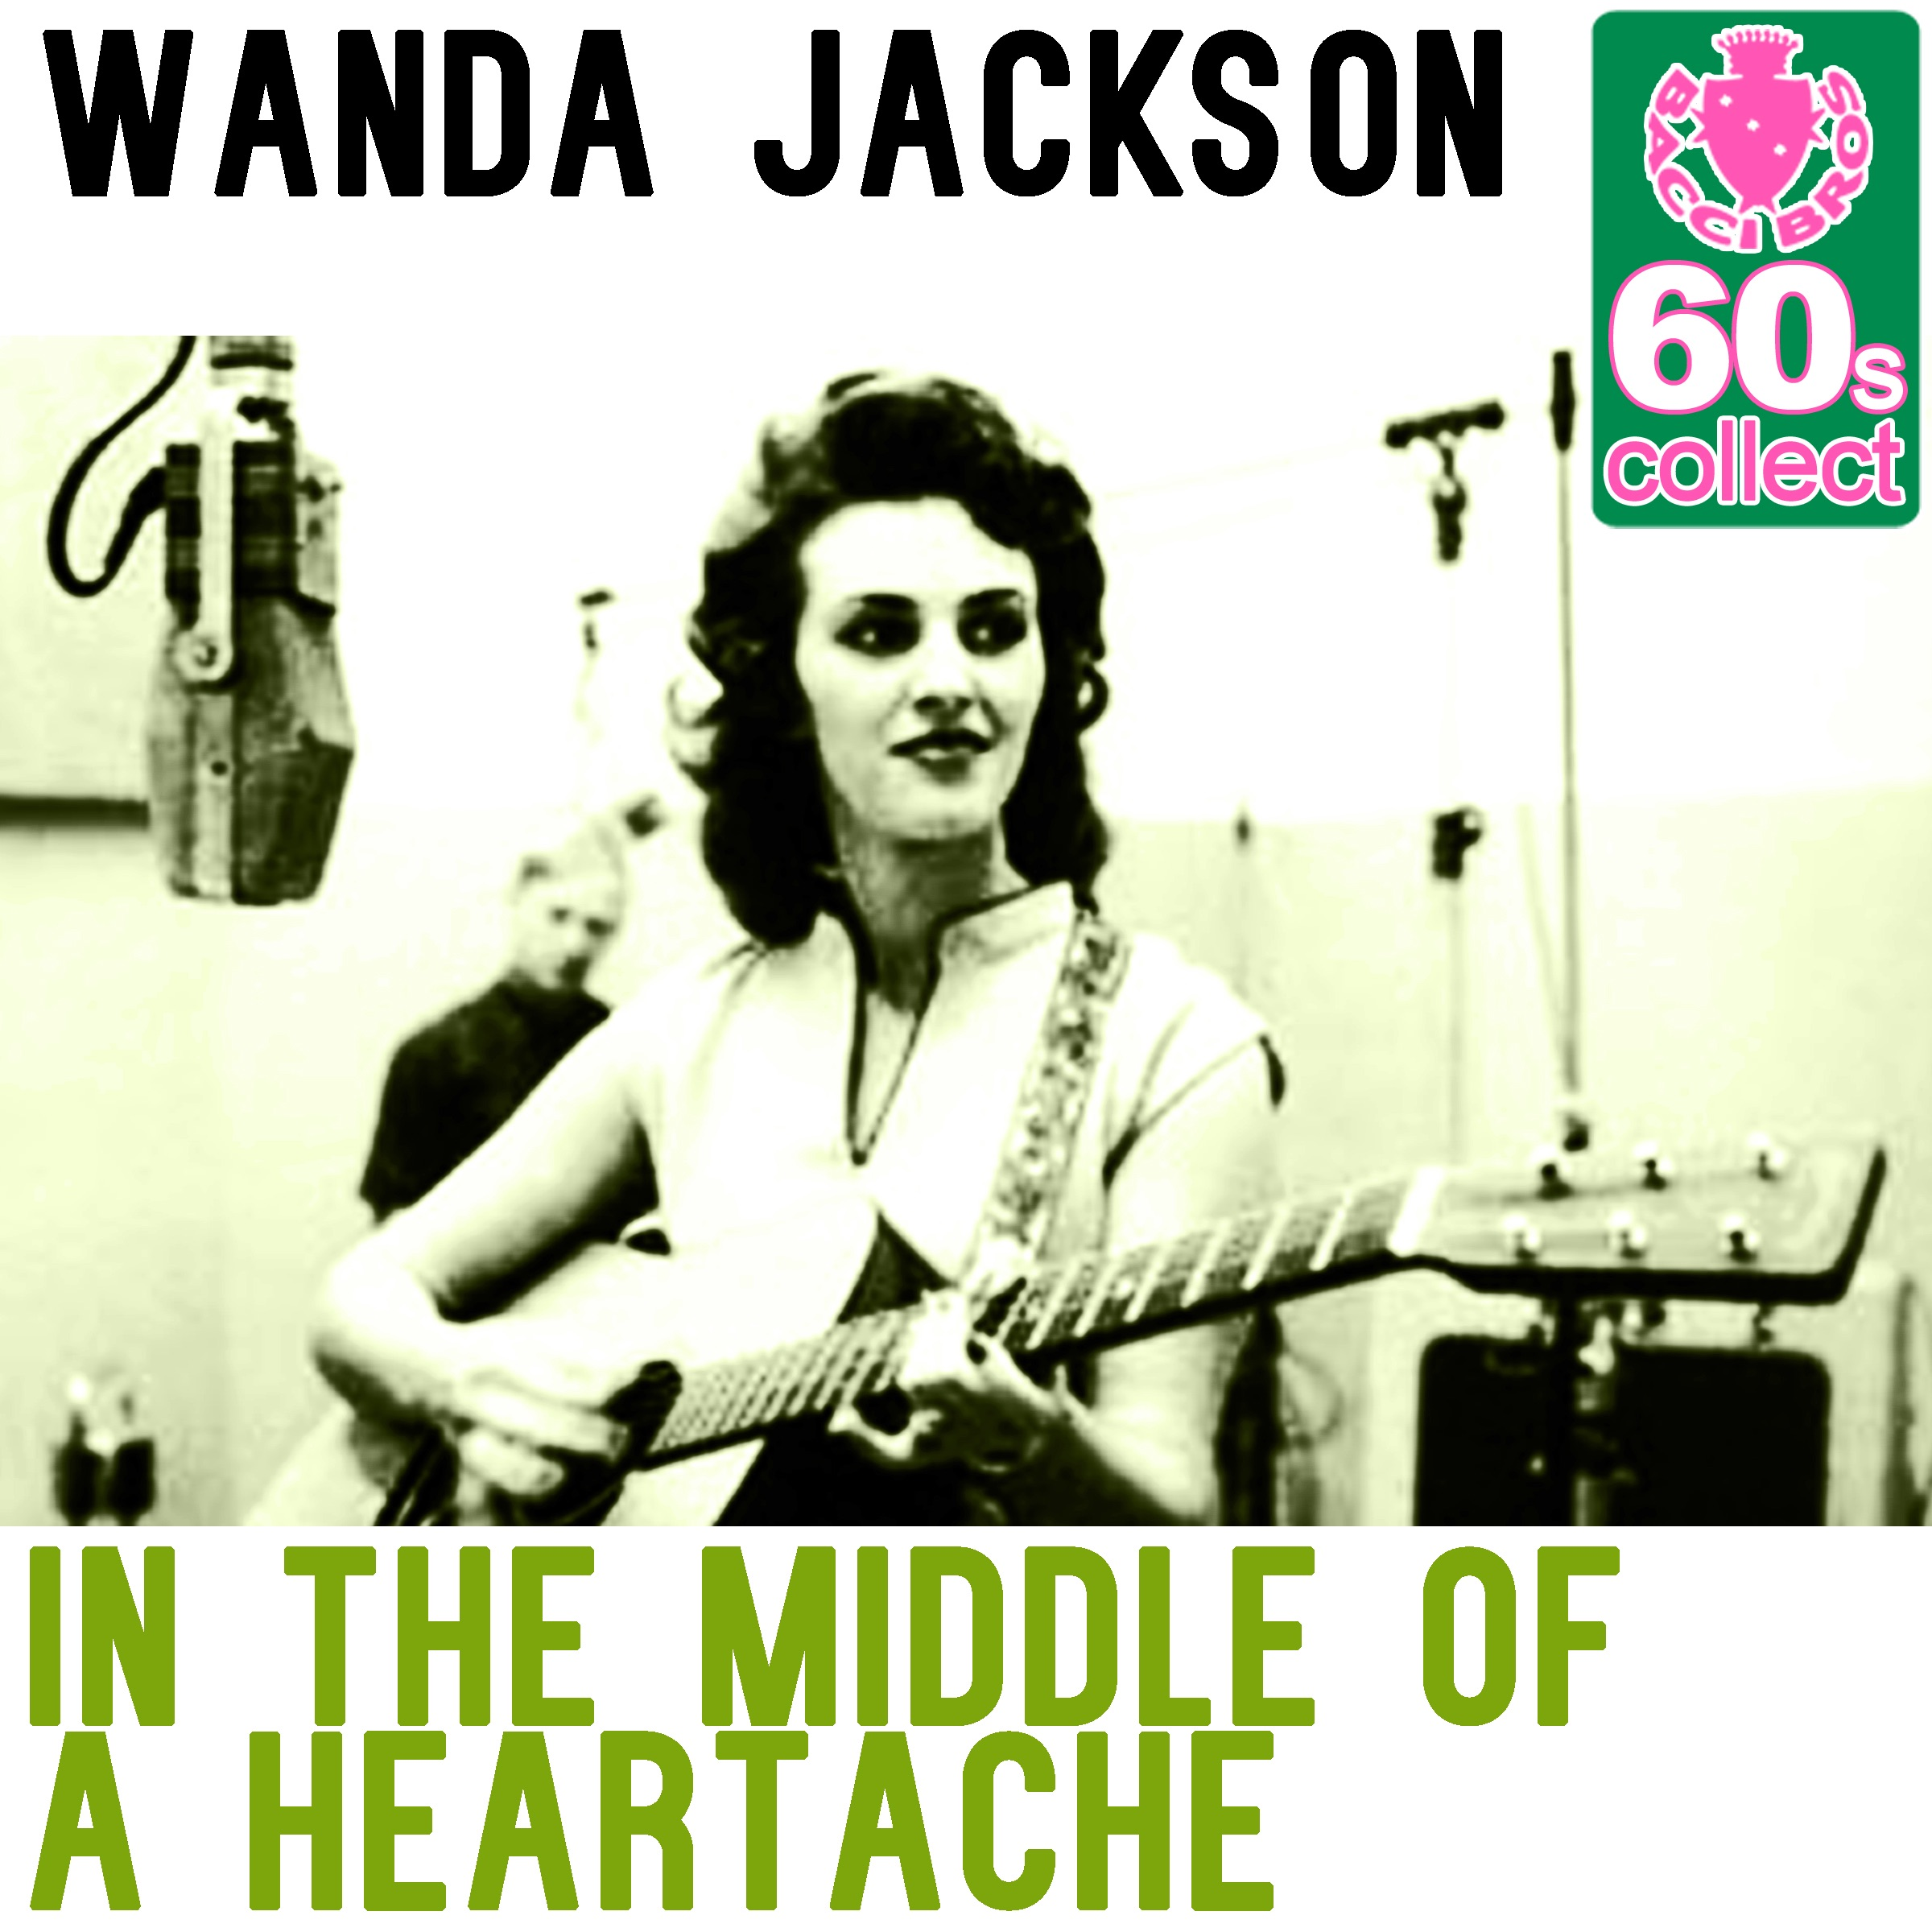 In the Middle of a Heartache (Remastered) - Single